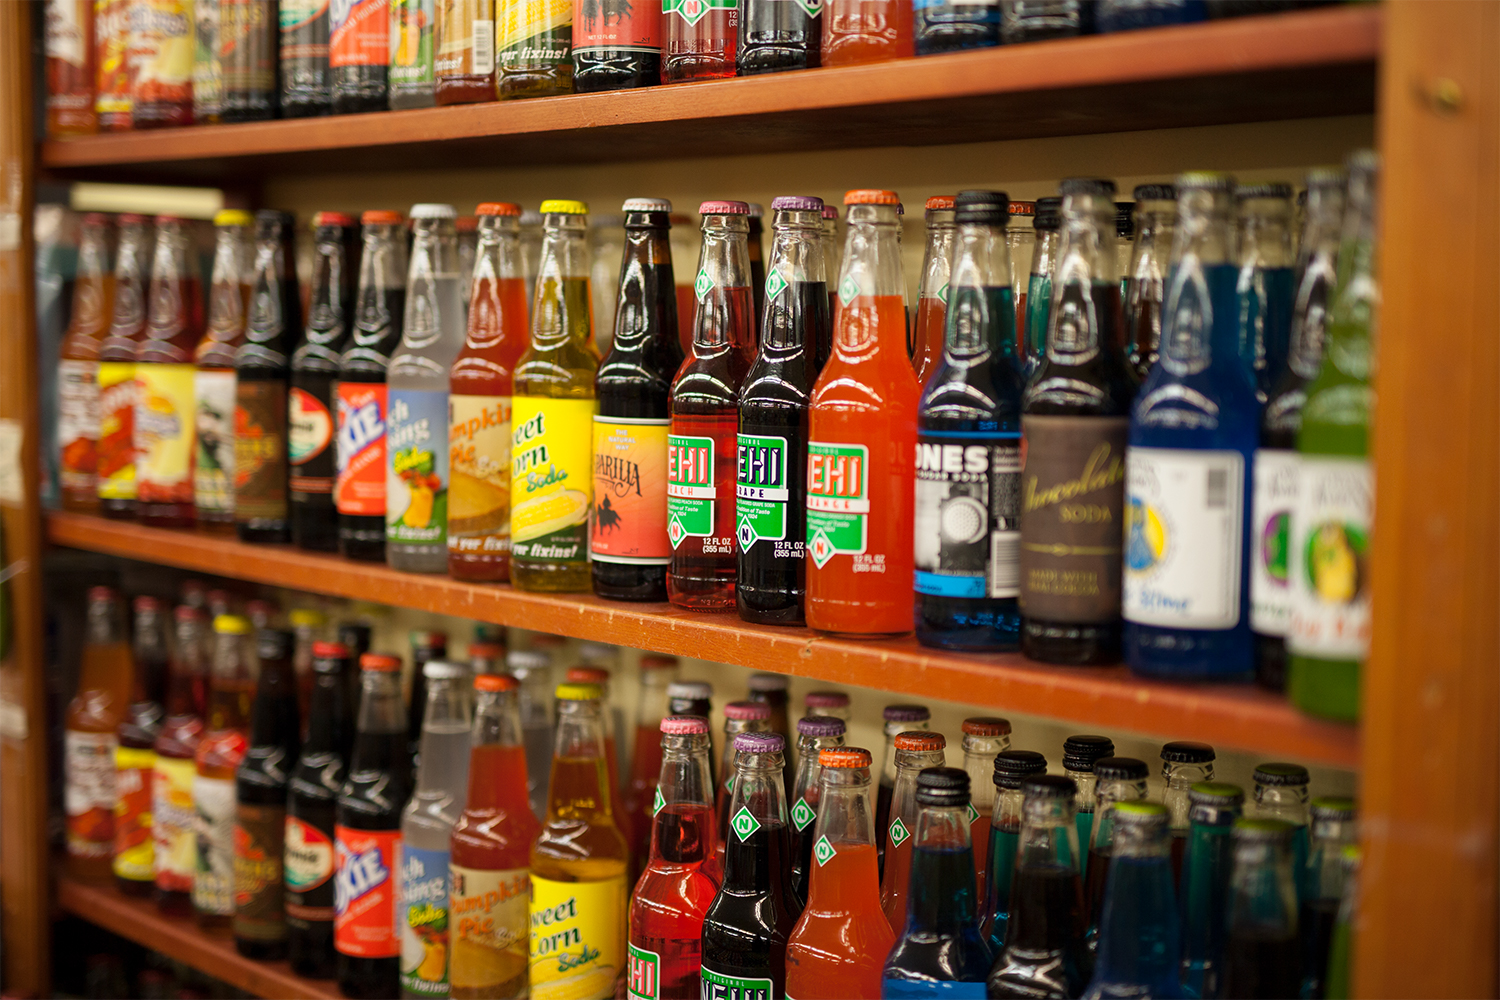 shelf full of soda flavors